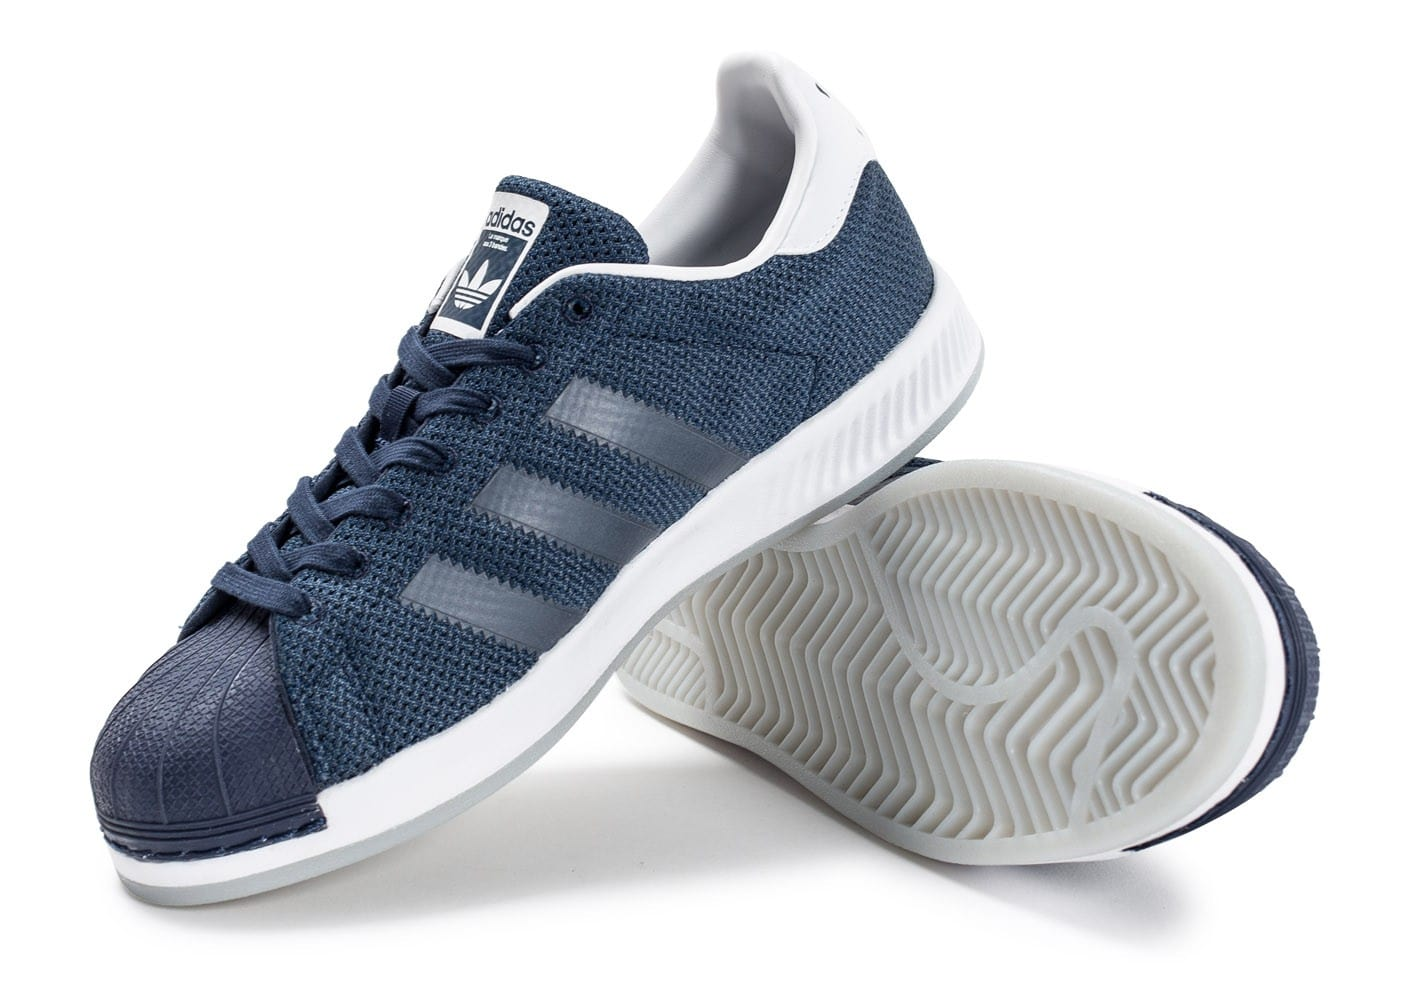 Snap adidas Superstar Superstar Superstar Bounce bleu marine Chaussures Homme Chausport 3b3ae2